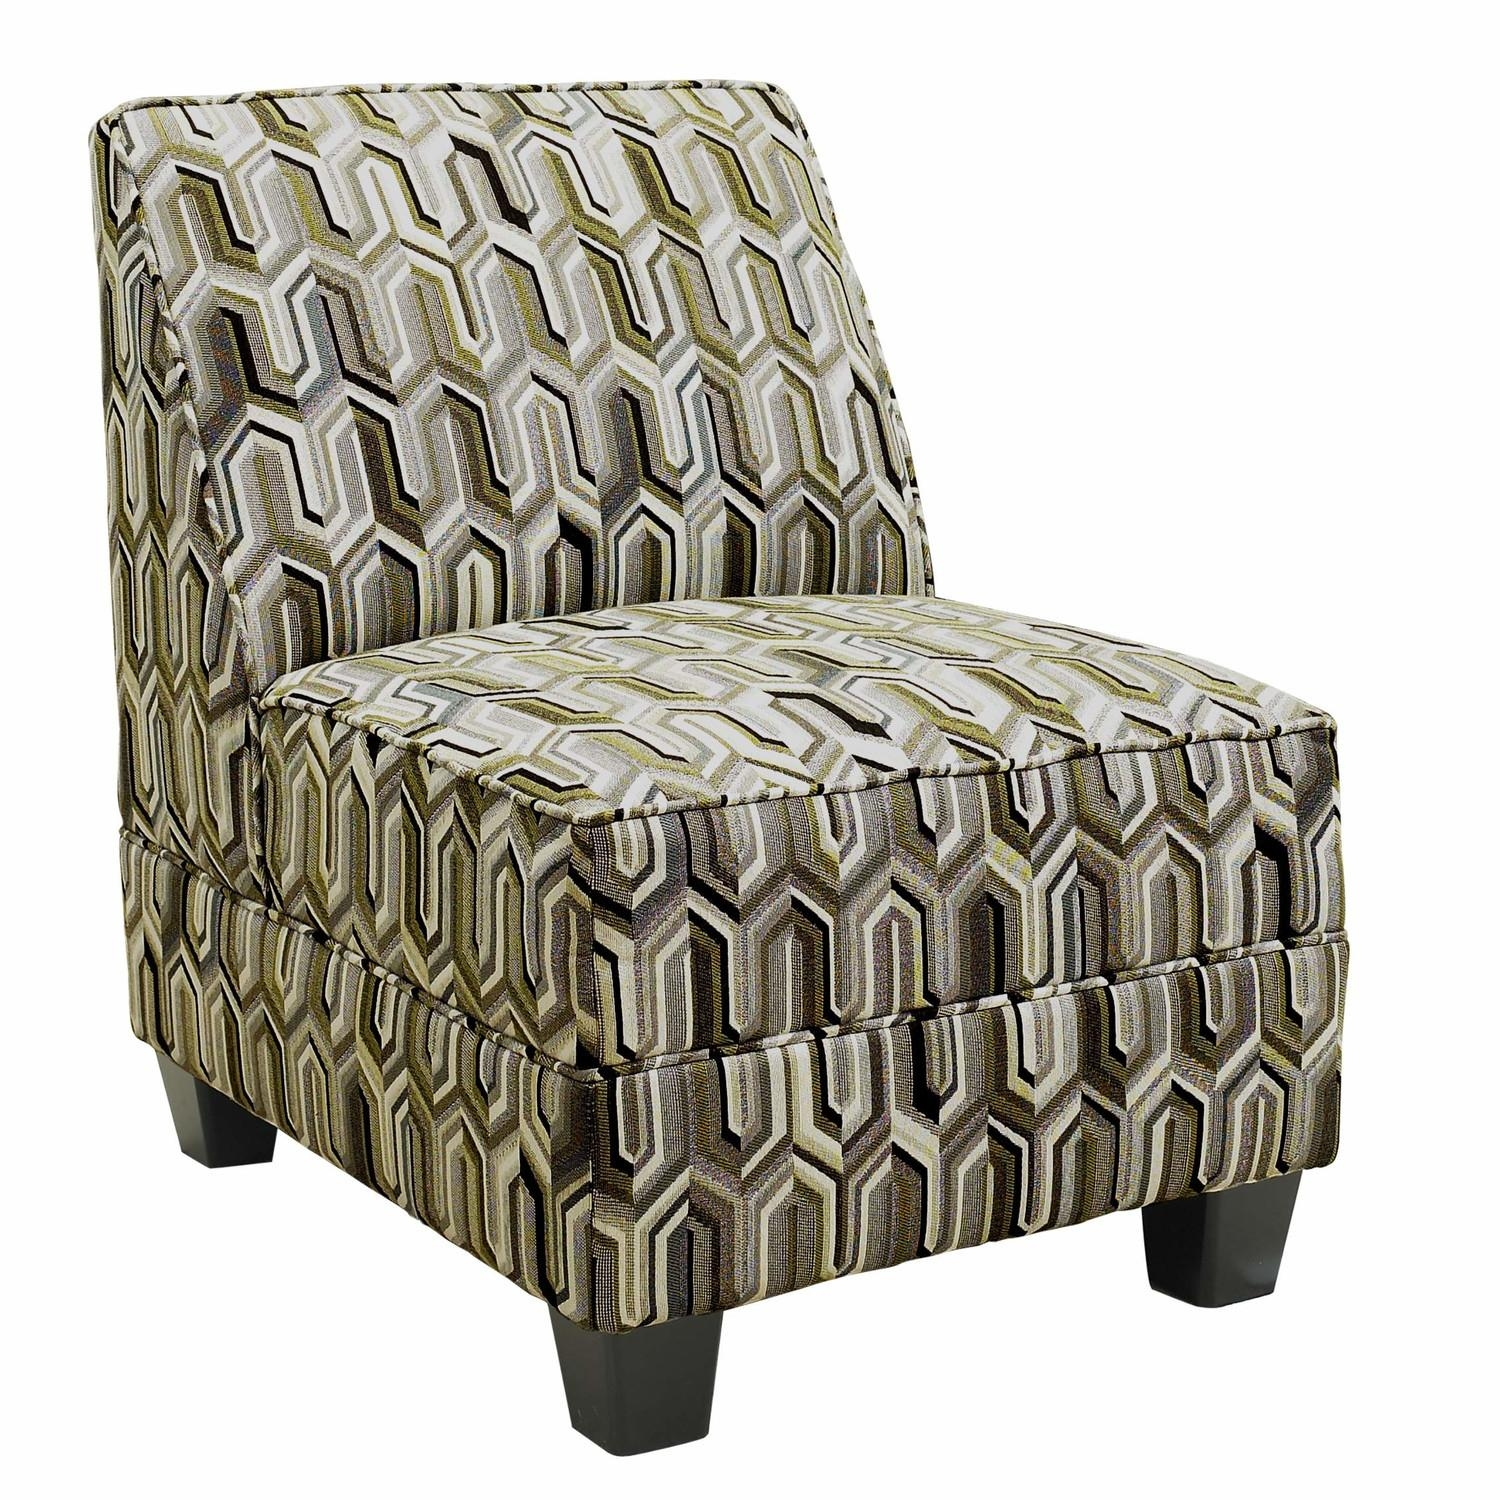 Armless Chair Slipcover.armless Accent Chair Slipcover (View 11 of 20)